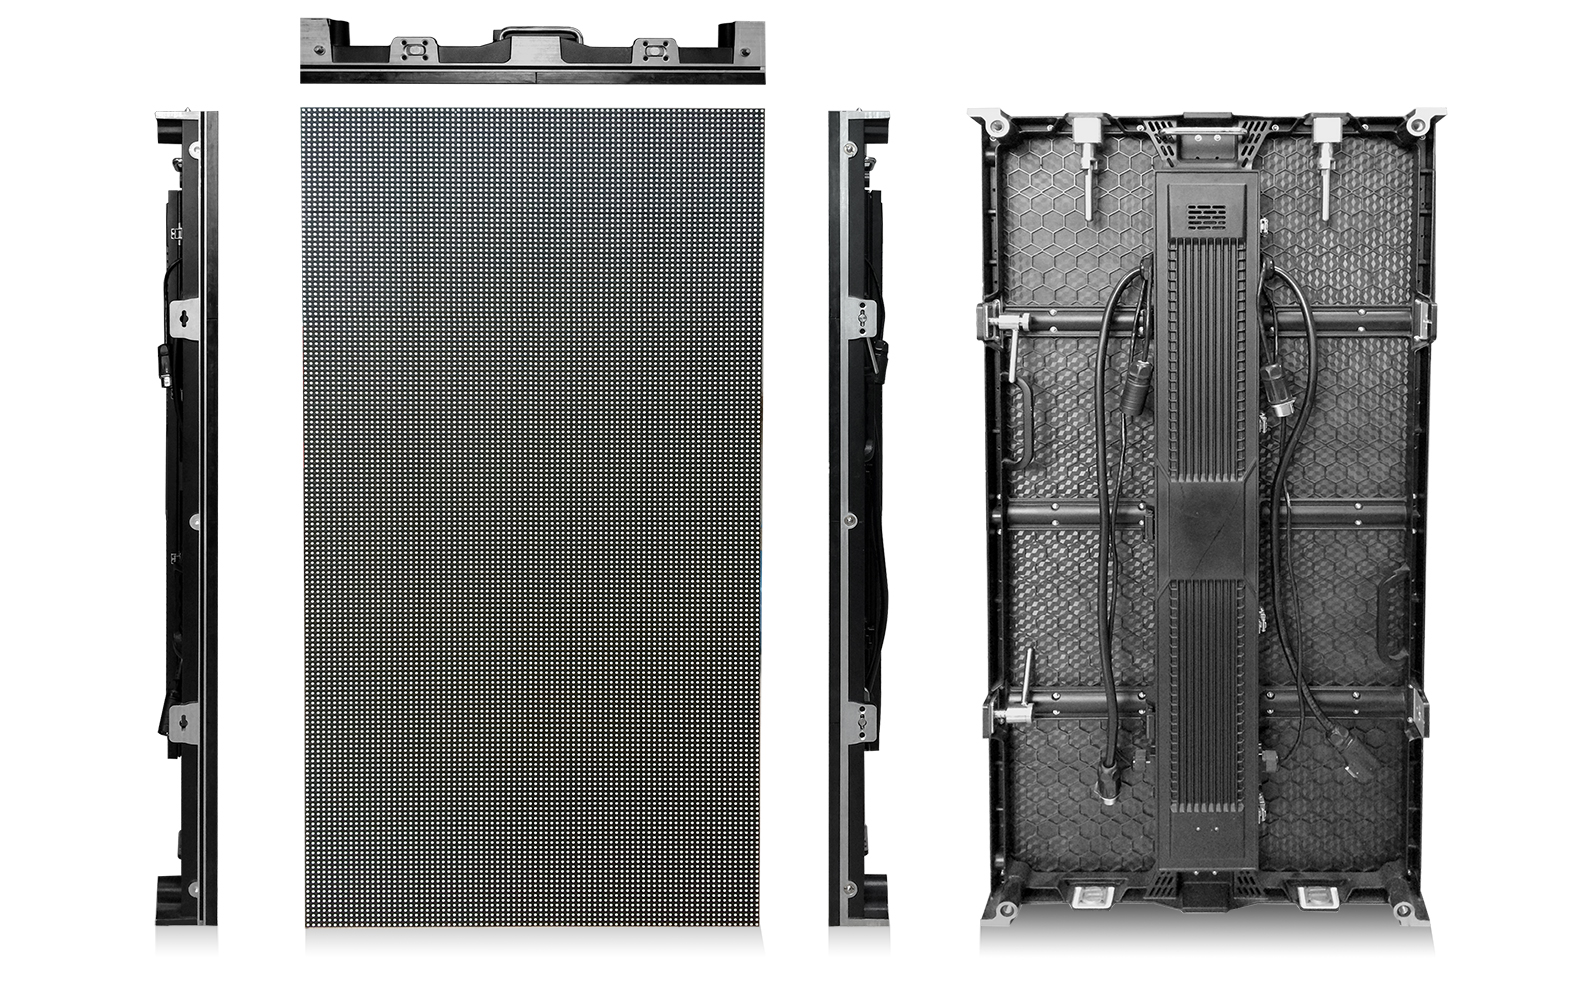 outdoor Special stage LED display screen p4.81 1000500mm outdoor led display.P4.81 Special stage LE